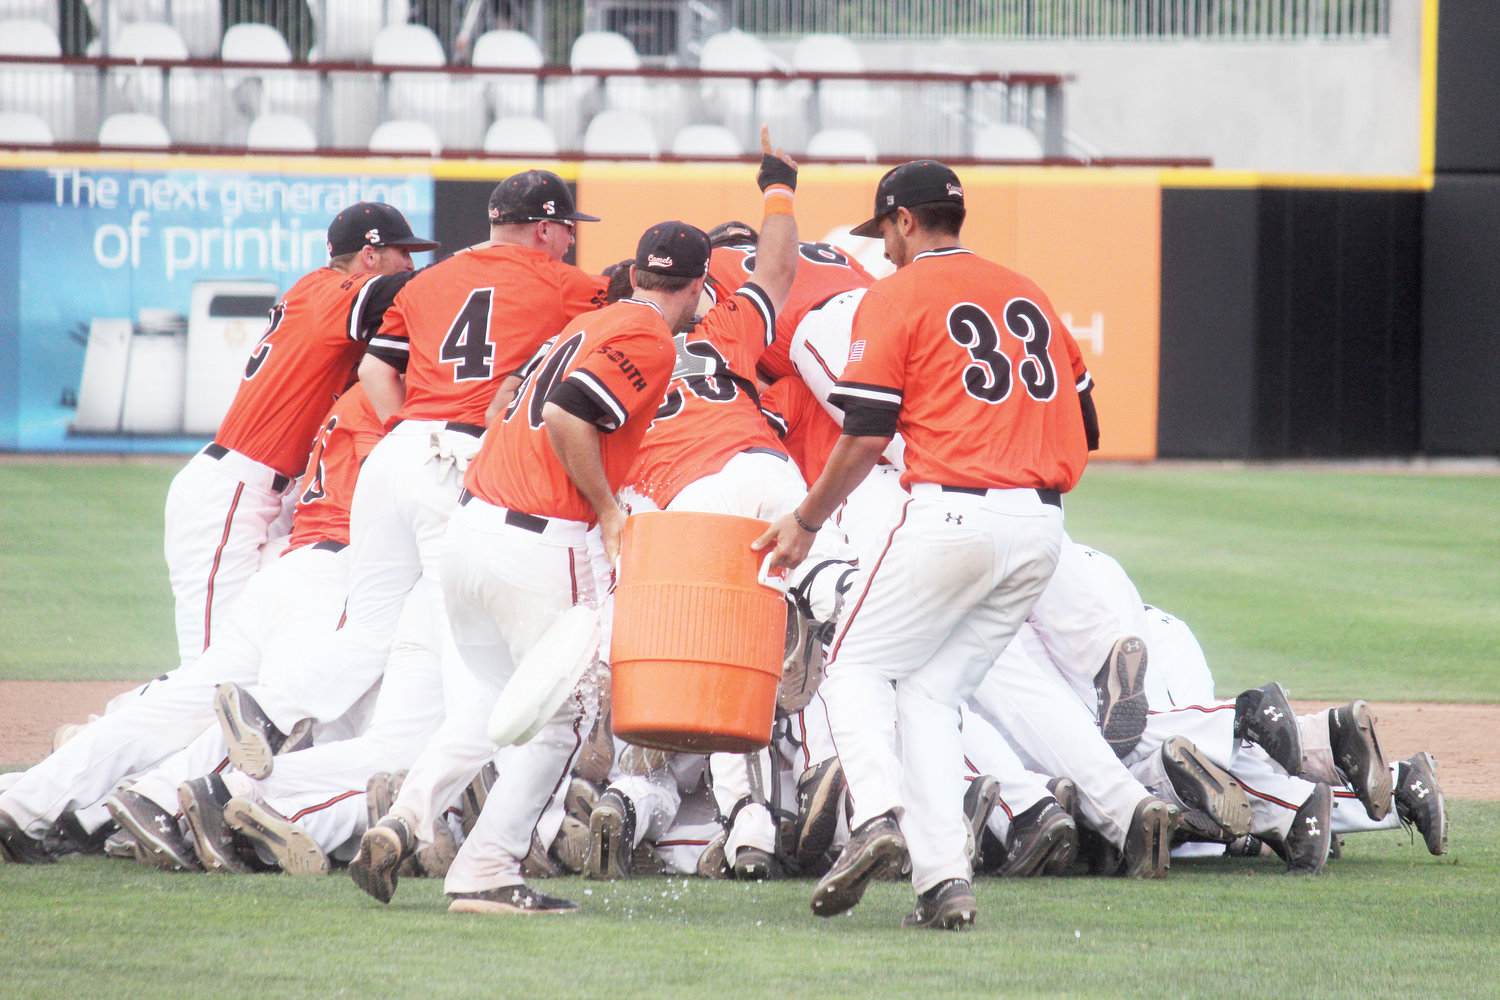 Campbell baseball earns ABCA Academic Excellence Award | The